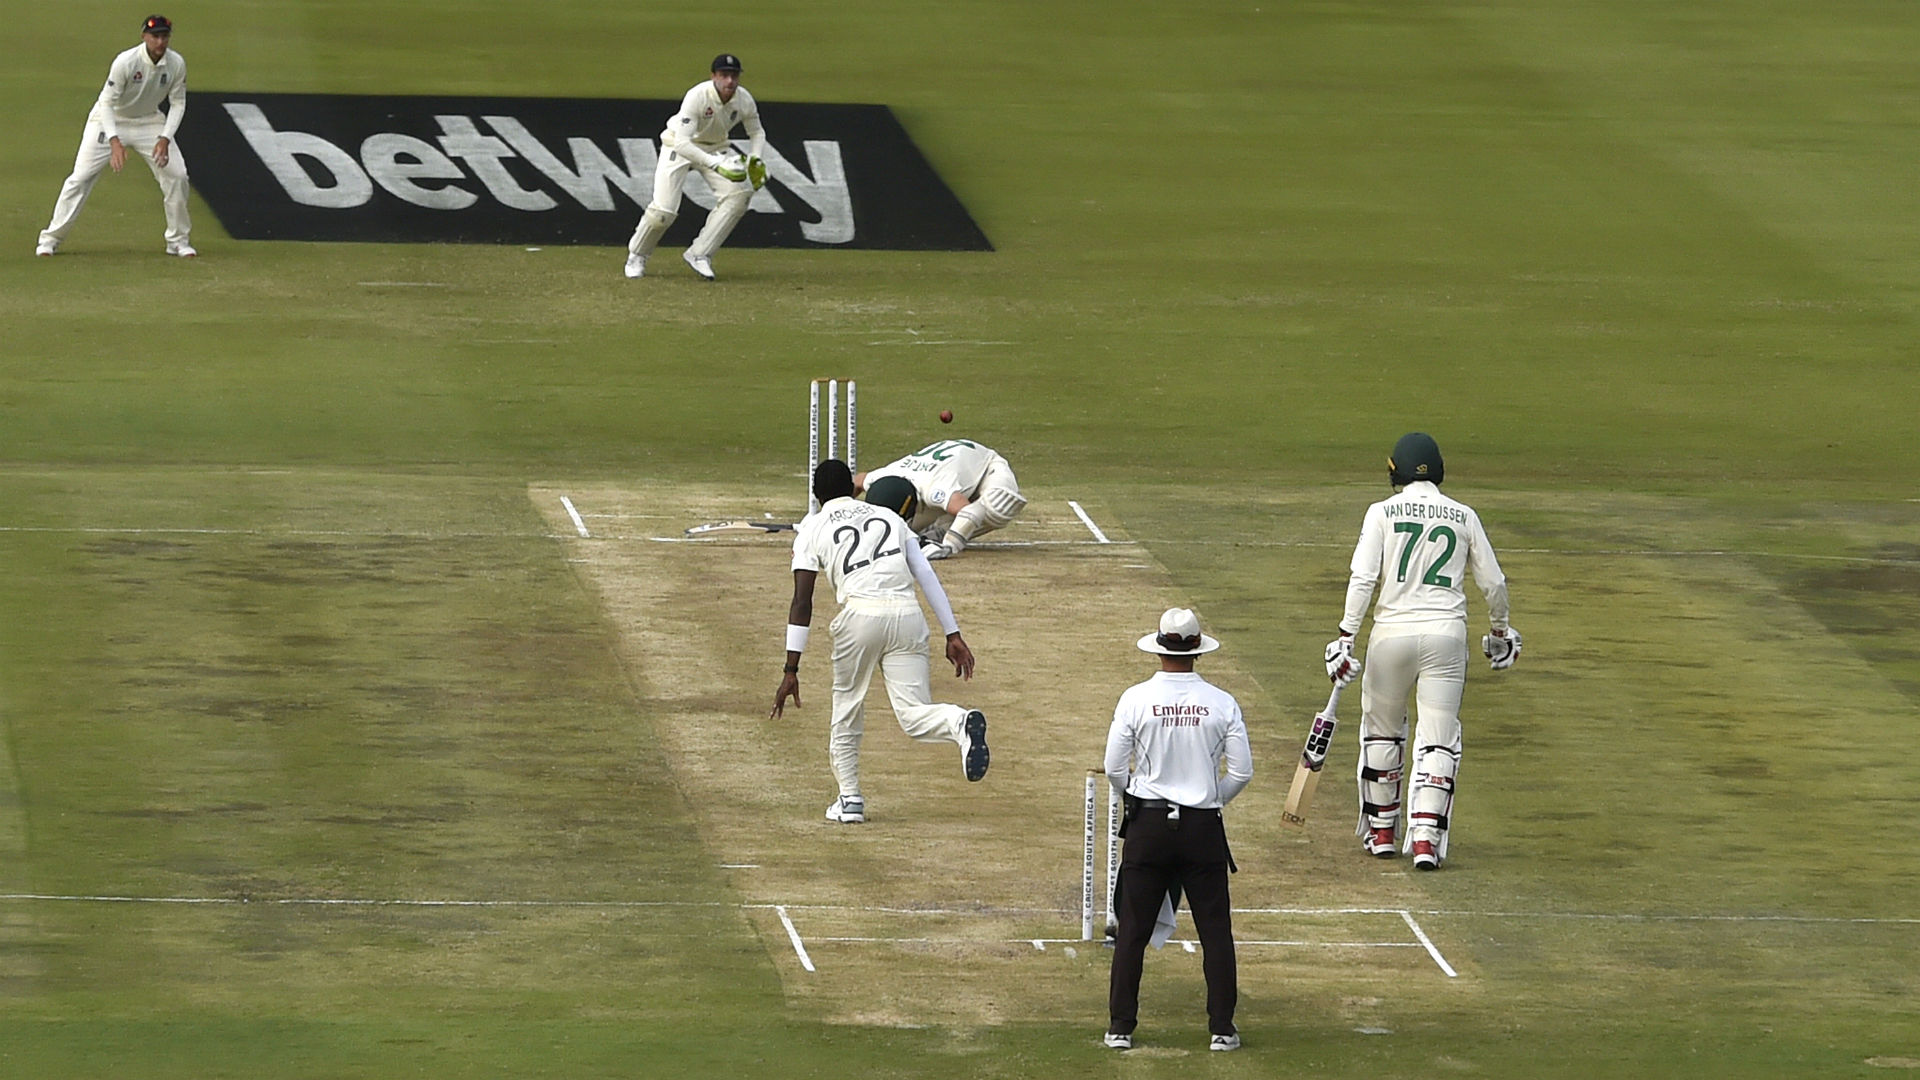 Philander angered by umpires' decision on Archer no-ball